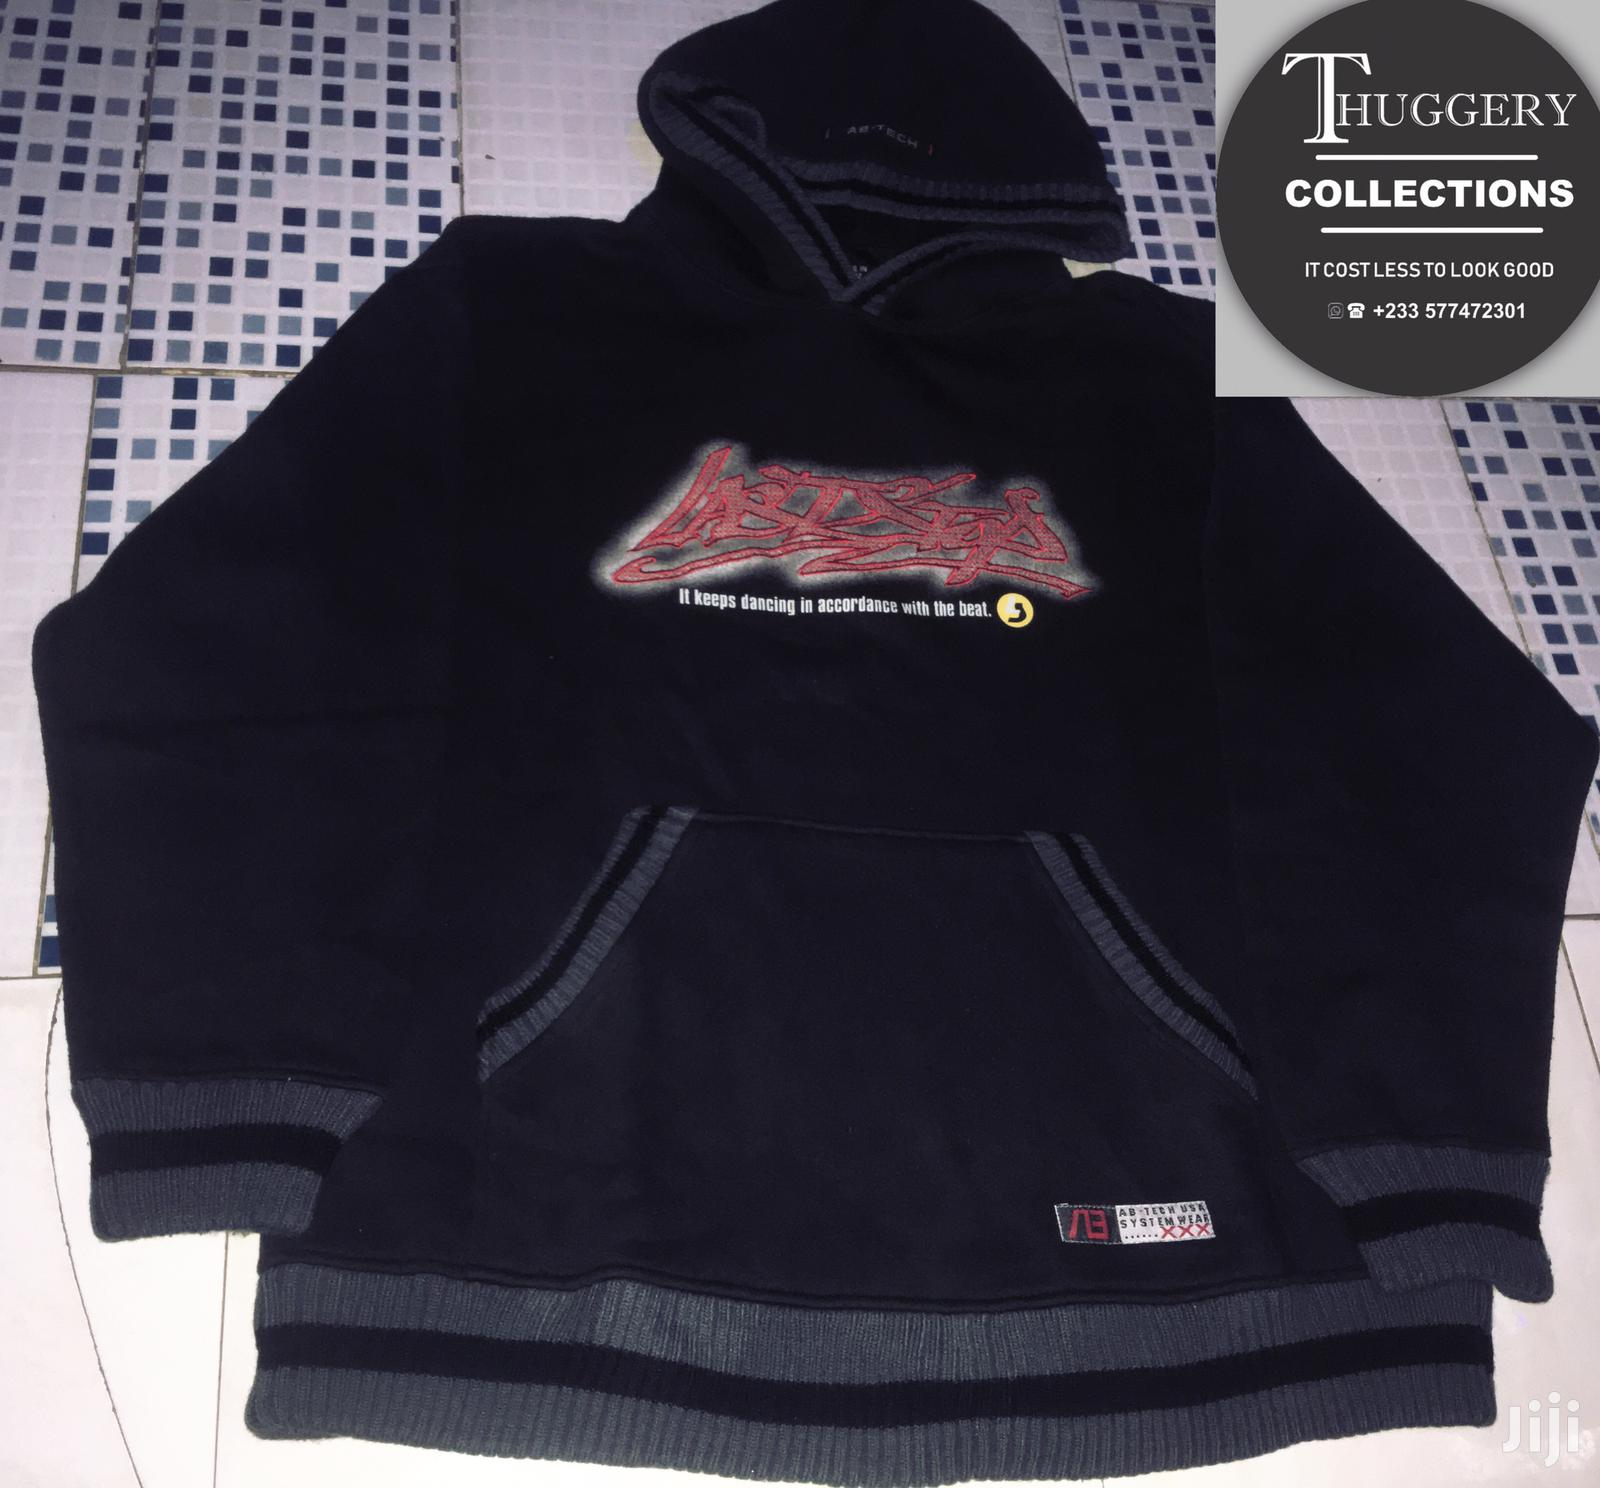 Quality Hoodies Available   Clothing for sale in Tesano, Greater Accra, Ghana